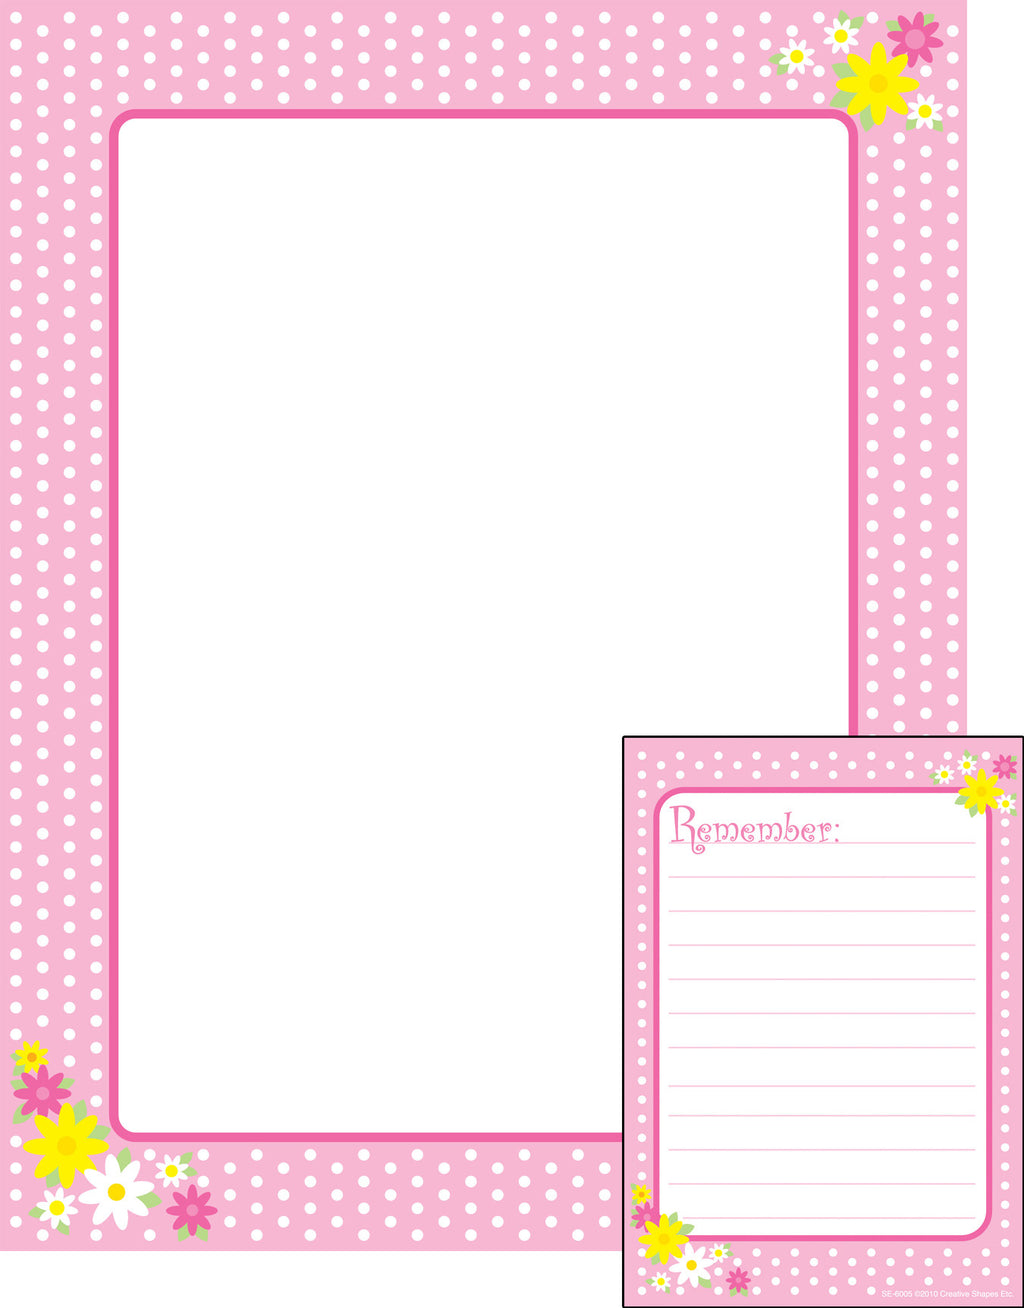 Notes & Quotes Writing Set - Remember Polka Dots - Creative Shapes Etc.